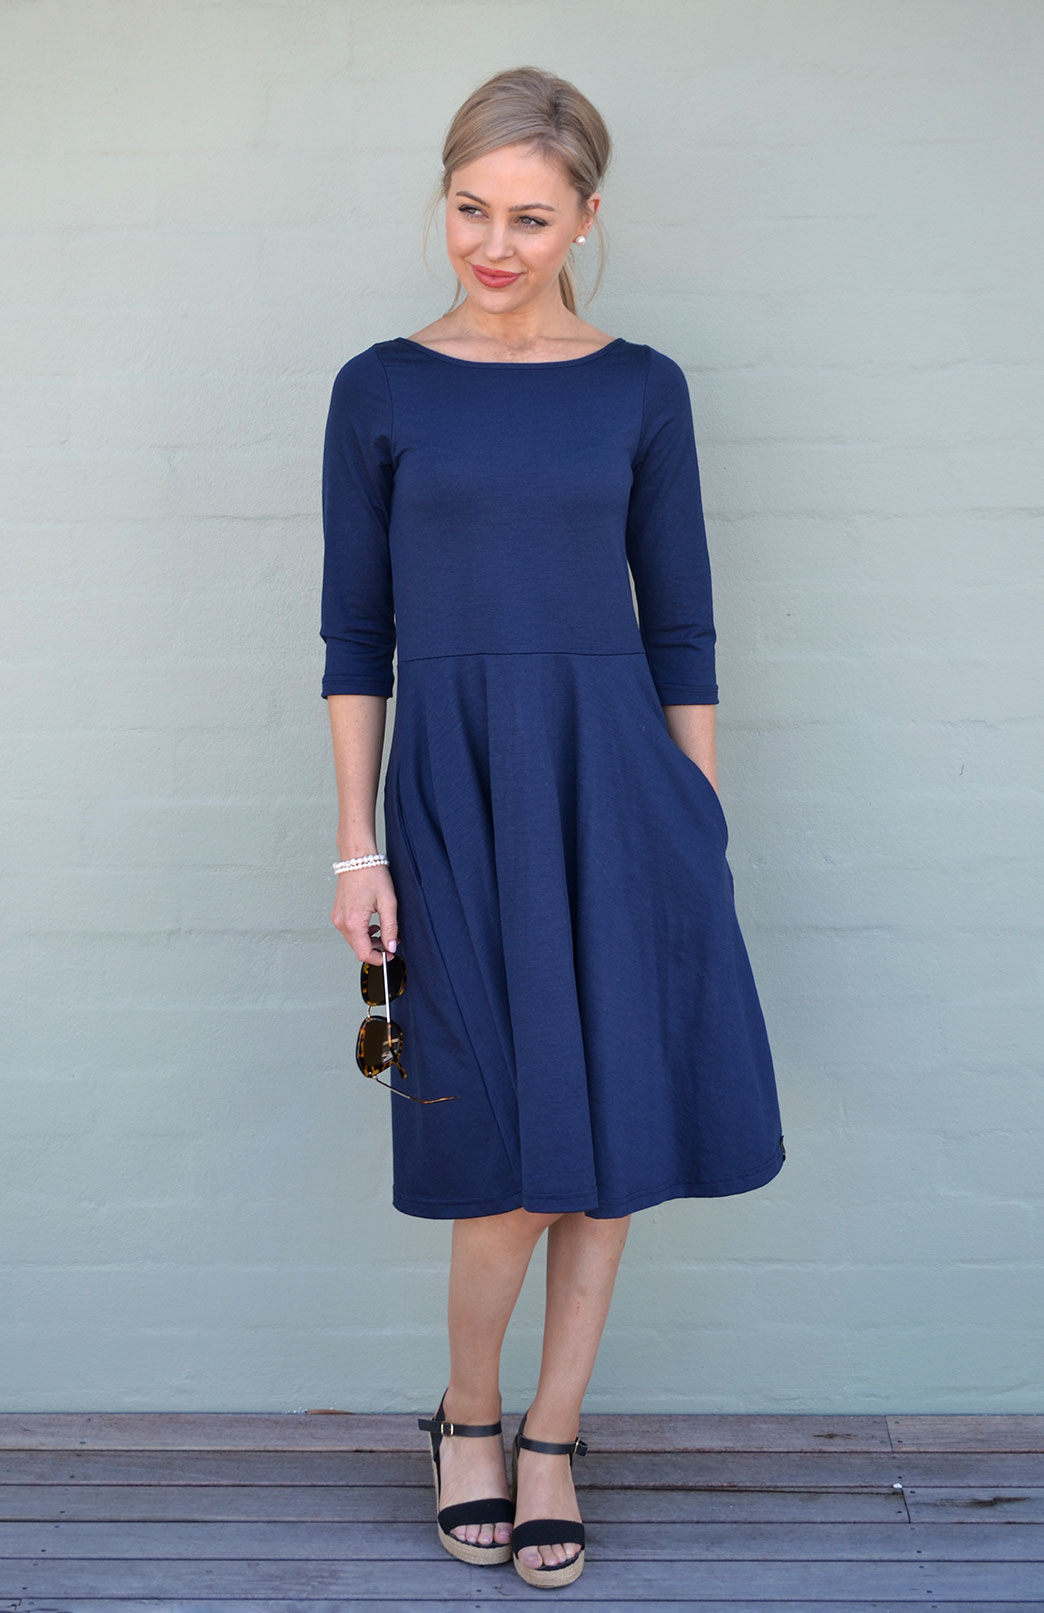 Mary Fit and Flare Dress - Women's Indigo Blue Merino Wool Fit and Flare Dress with 3/4 sleeves and pockets - Smitten Merino Tasmania Australia